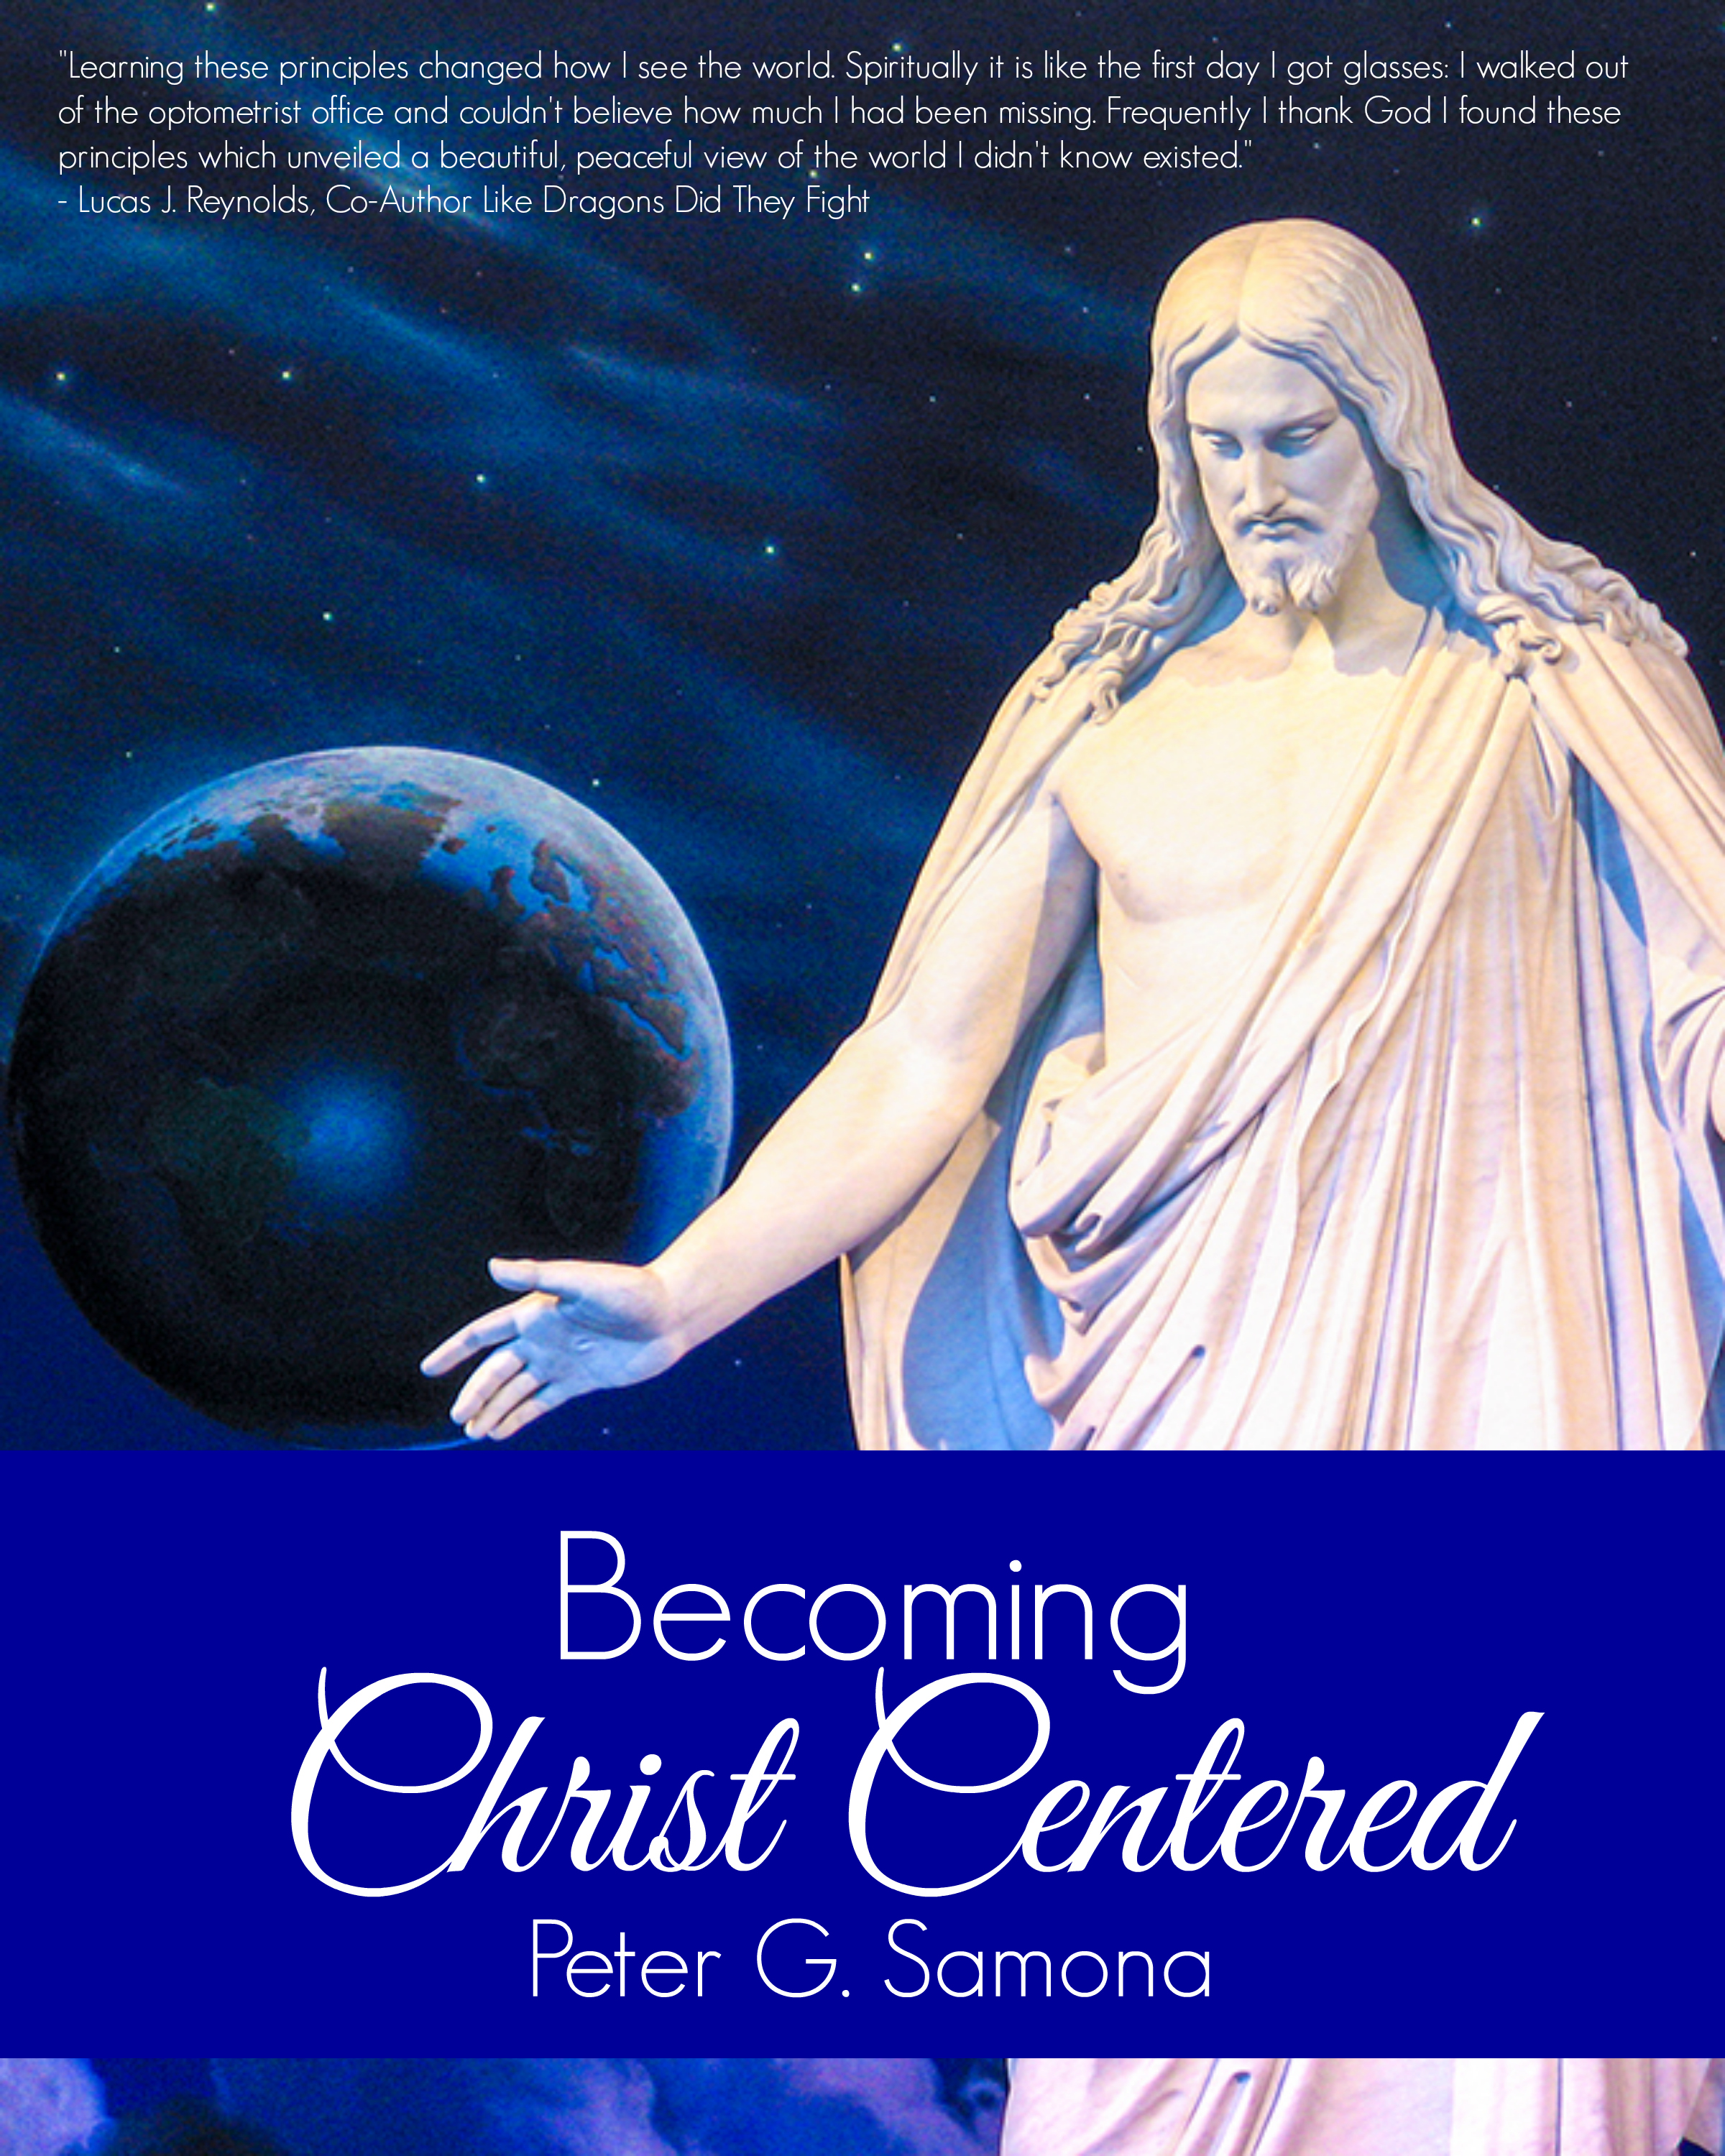 Becoming Christ Centered Manual Image